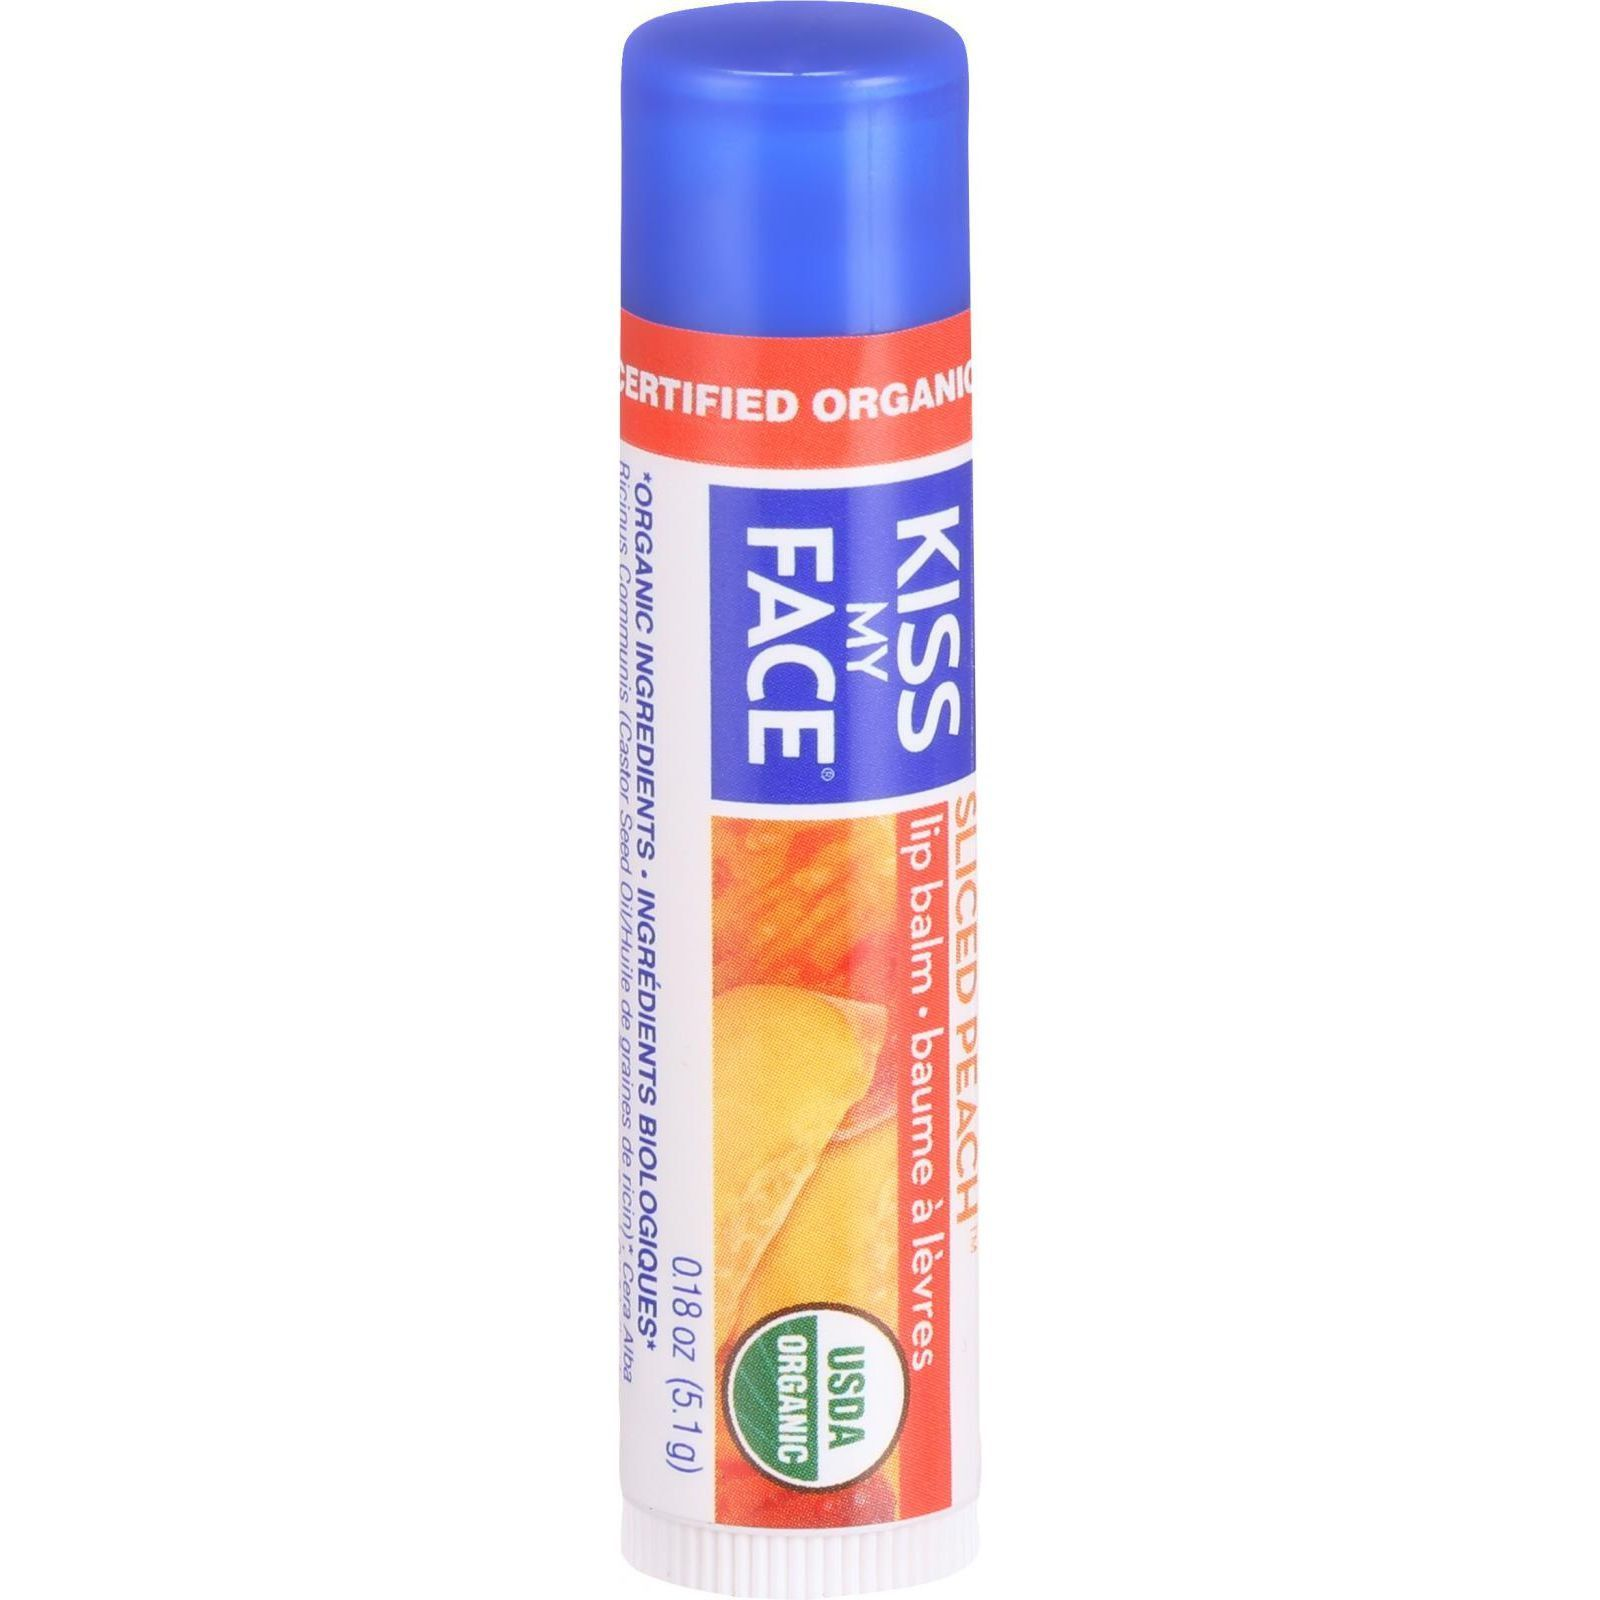 Kiss My Face Organic Lip Balm - Sliced Peach - .18 oz - Case of 24